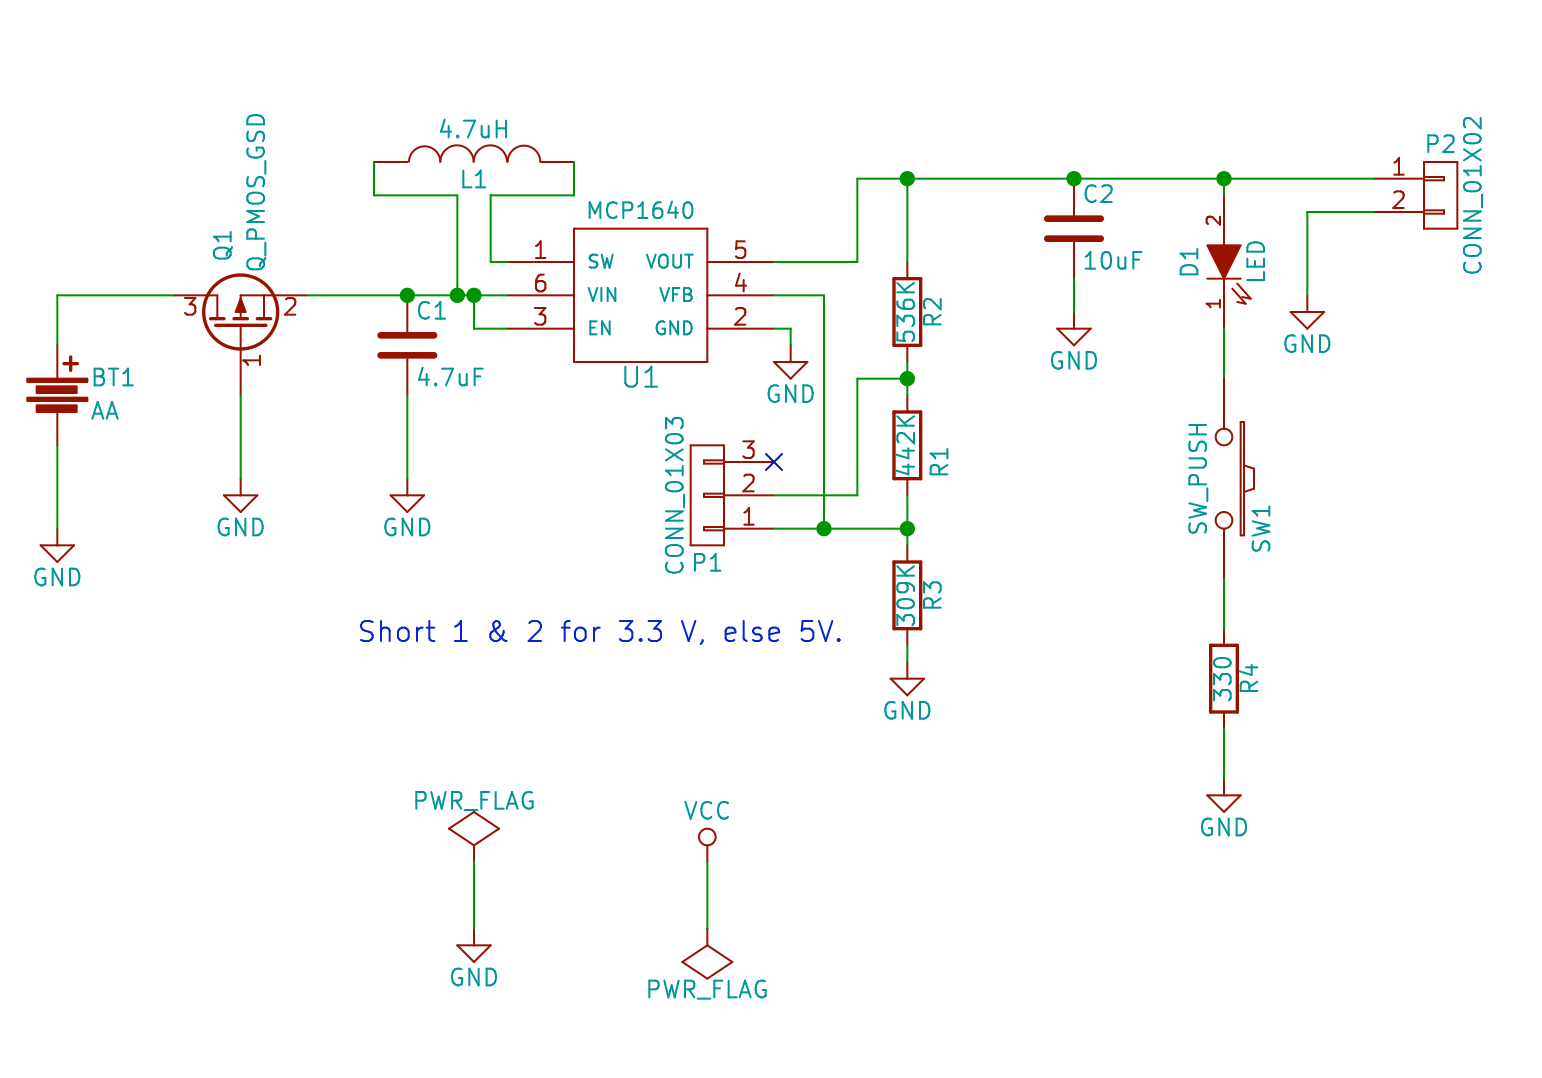 Aaboost Led Circuit 1 5 Volt Flasher 3 Lm3909 Schematic